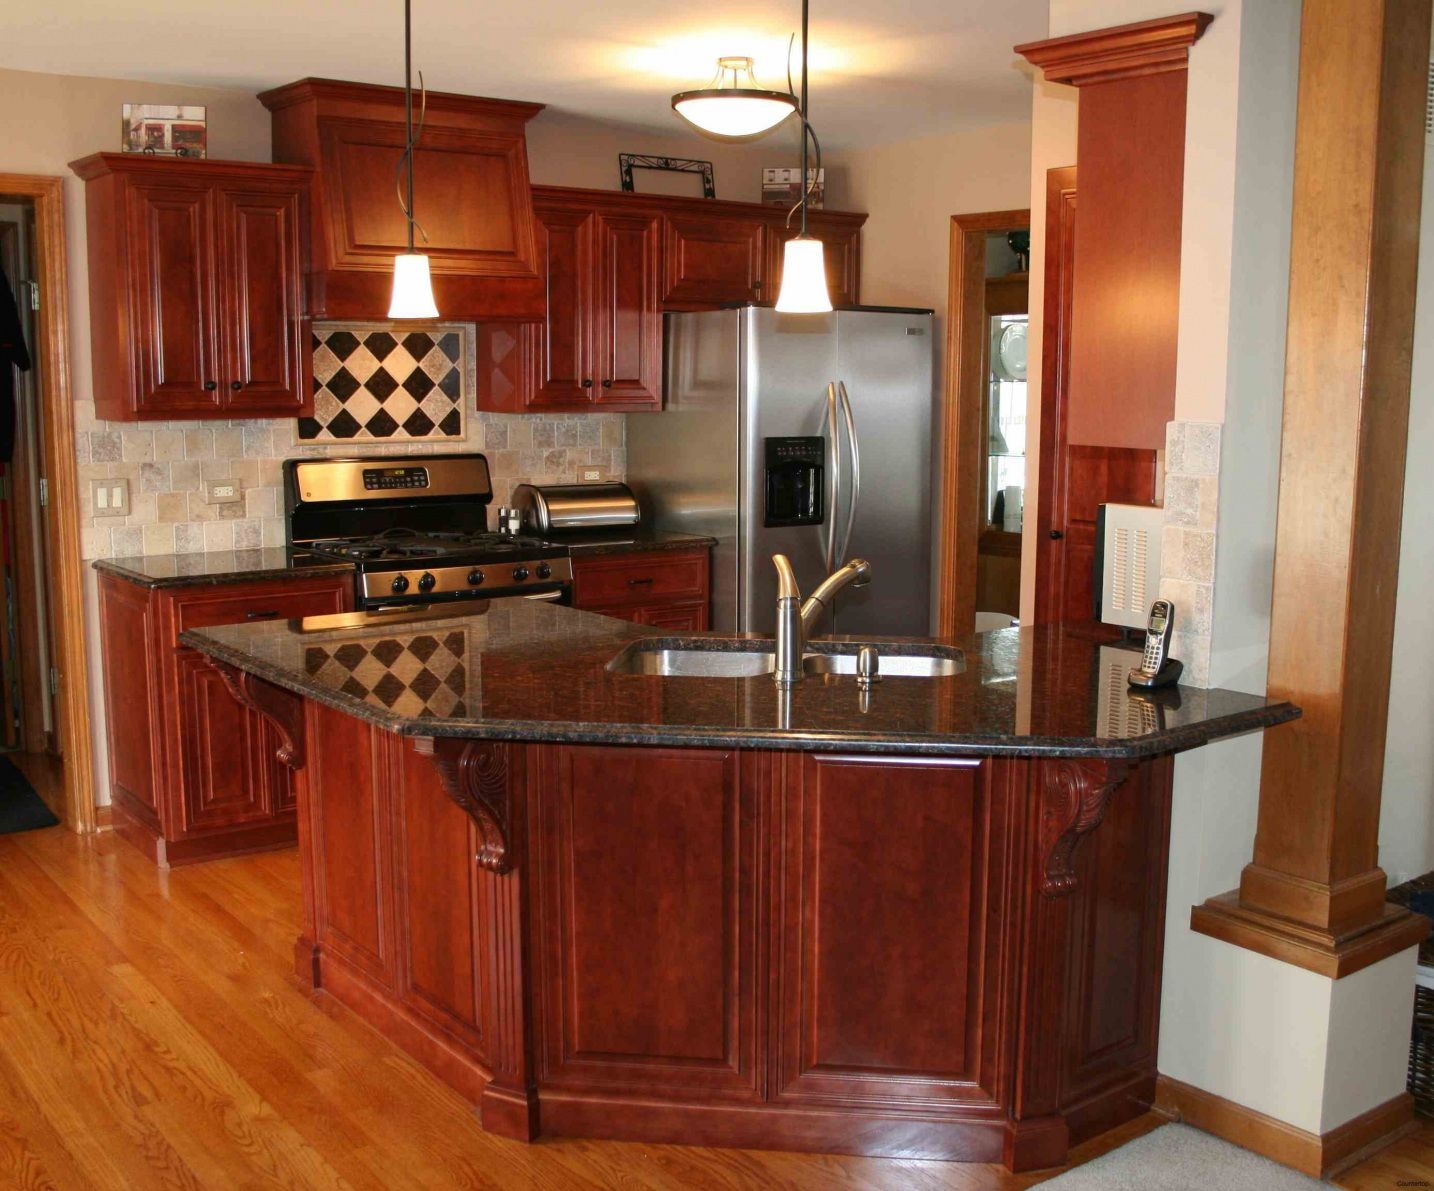 50 new kitchen cabinets cost estimator cheap kitchen decorating